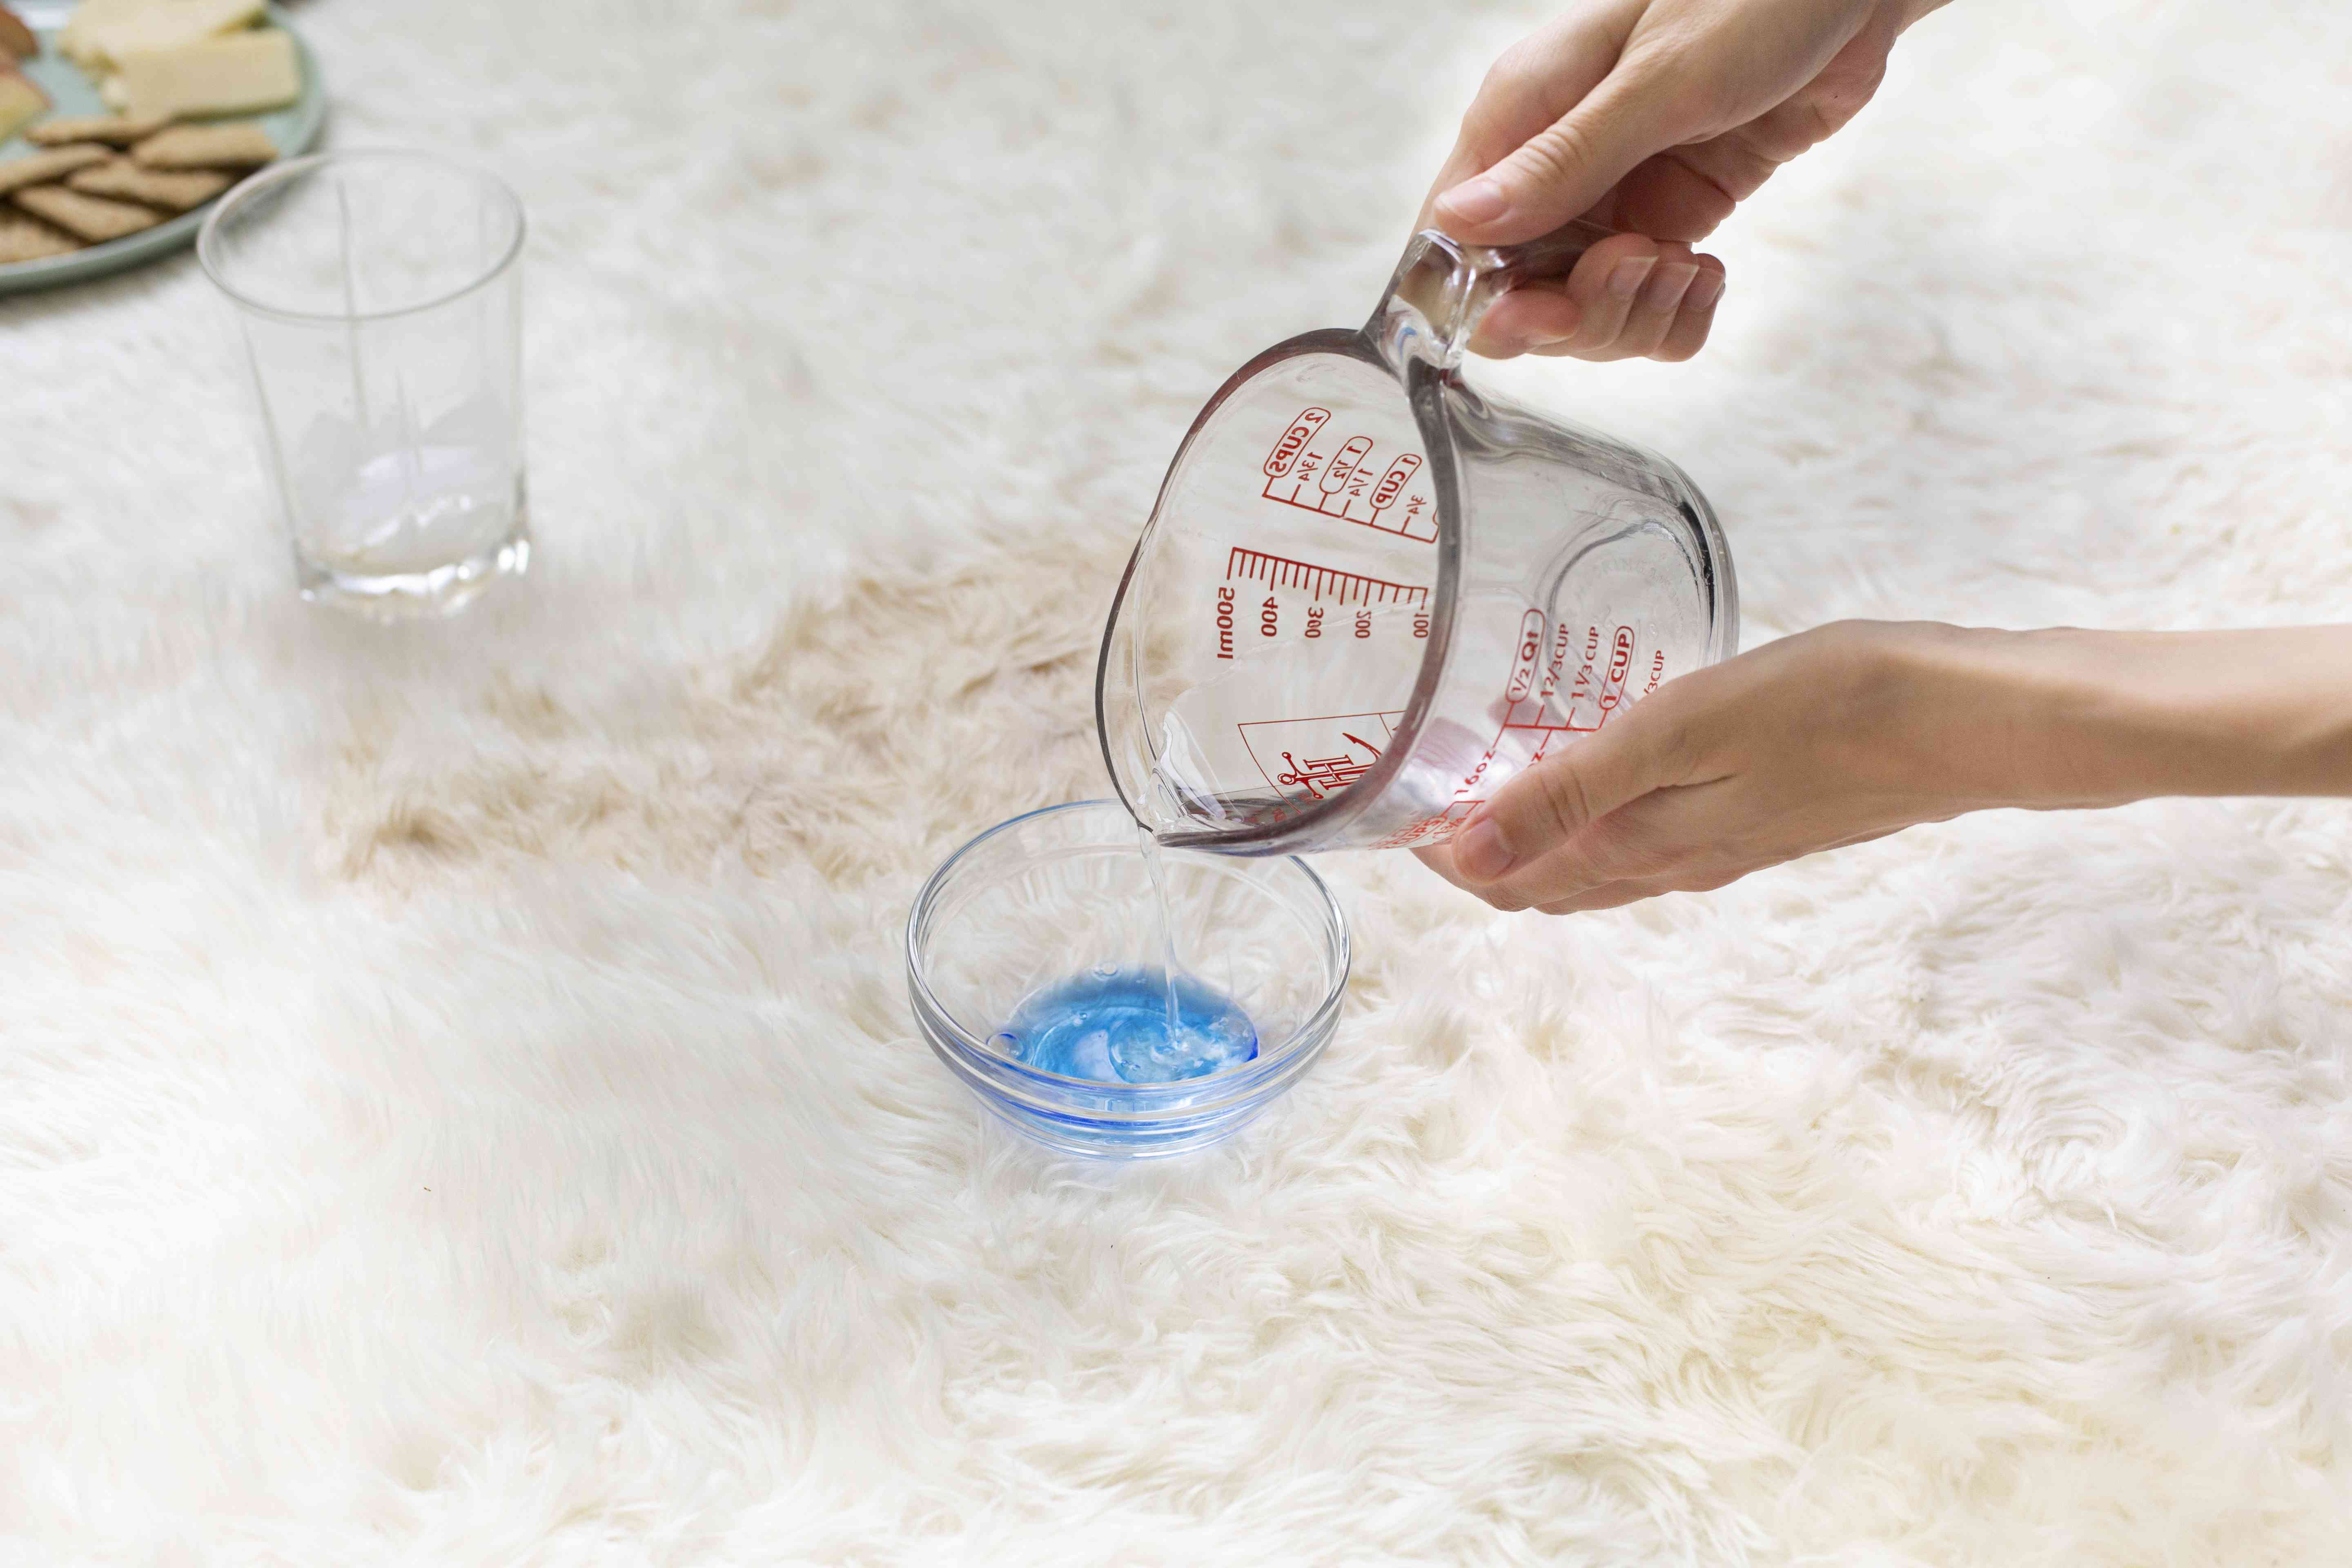 work detergent into the stain